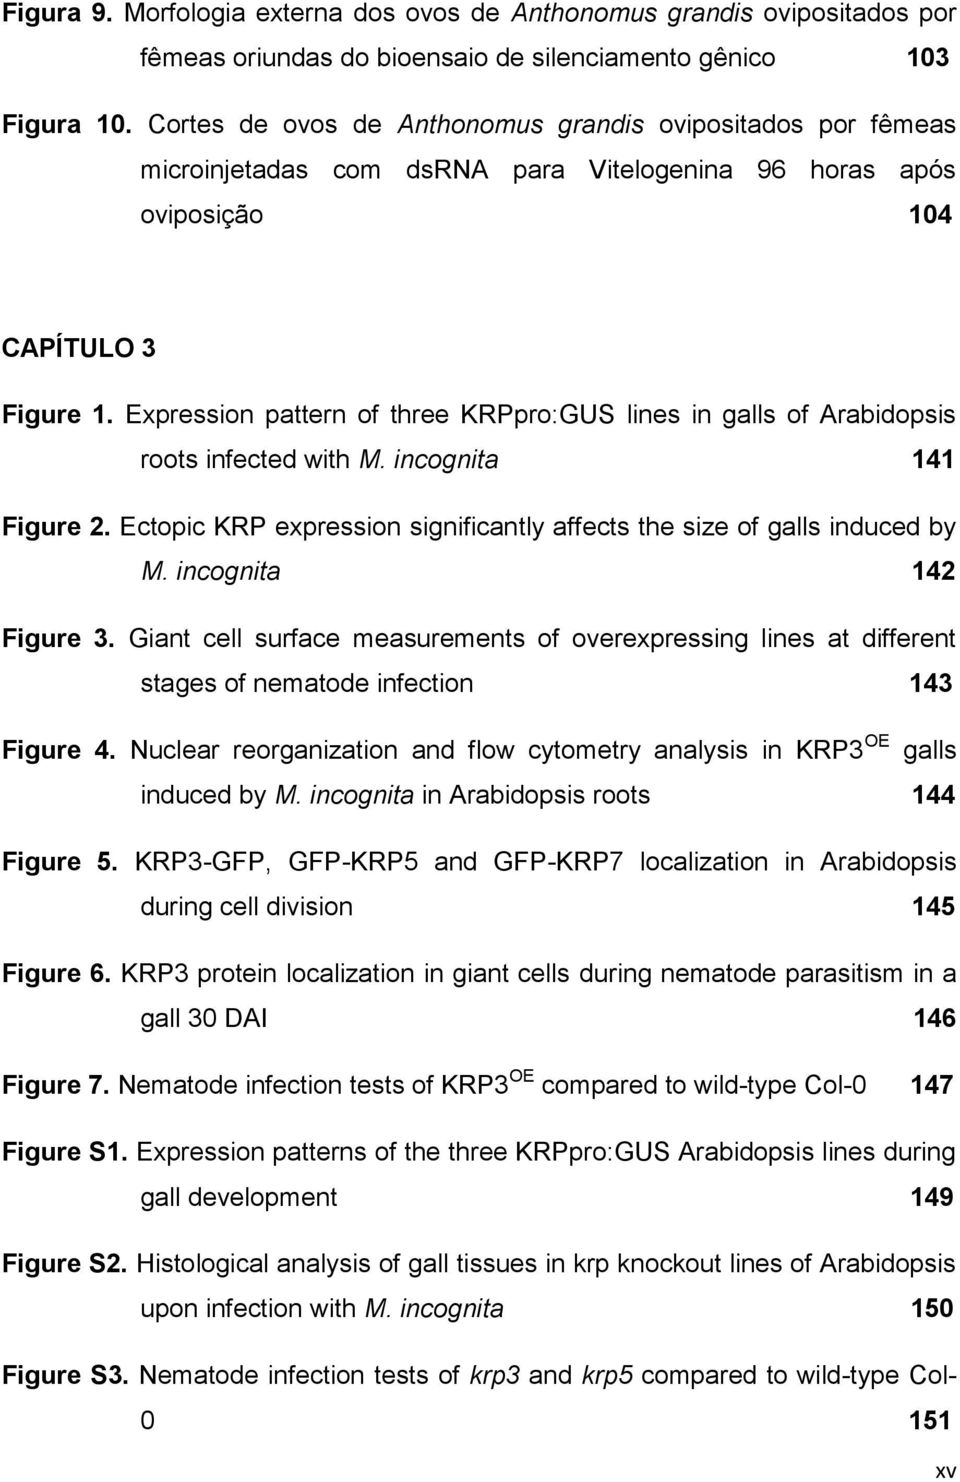 Expression pattern of three KRPpro:GUS lines in galls of Arabidopsis roots infected with M. incognita...141 Figure 2. Ectopic KRP expression significantly affects the size of galls induced by M.